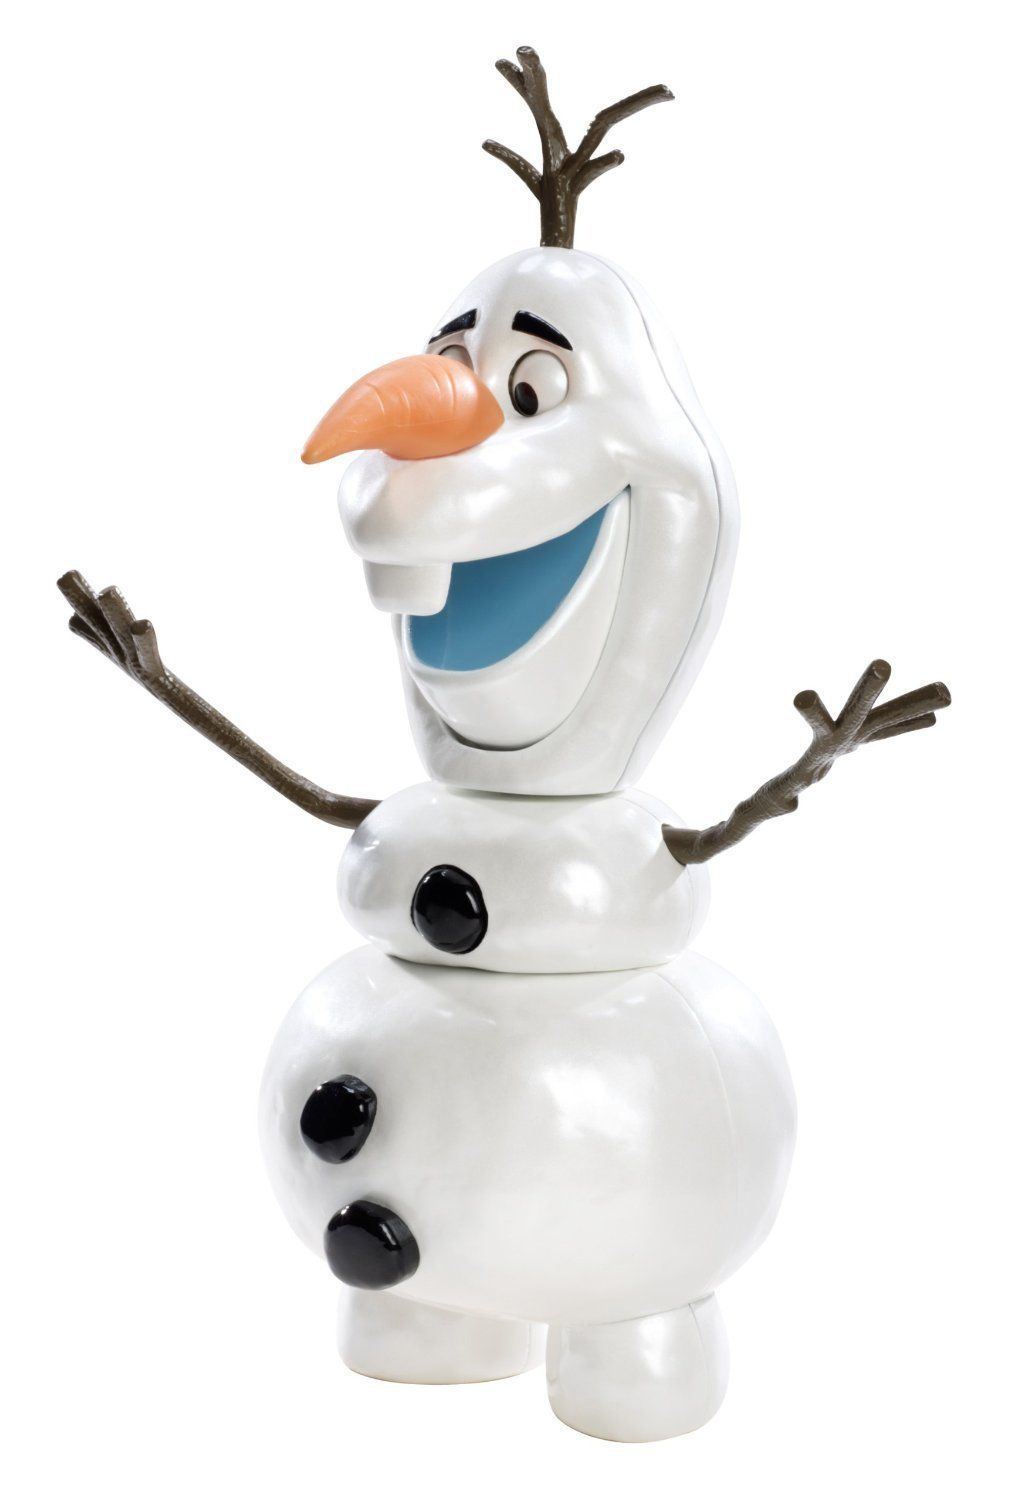 Cute Disney Frozen Olaf Doll 9 Tall w/Different Facial Expressions, Mattel 3+